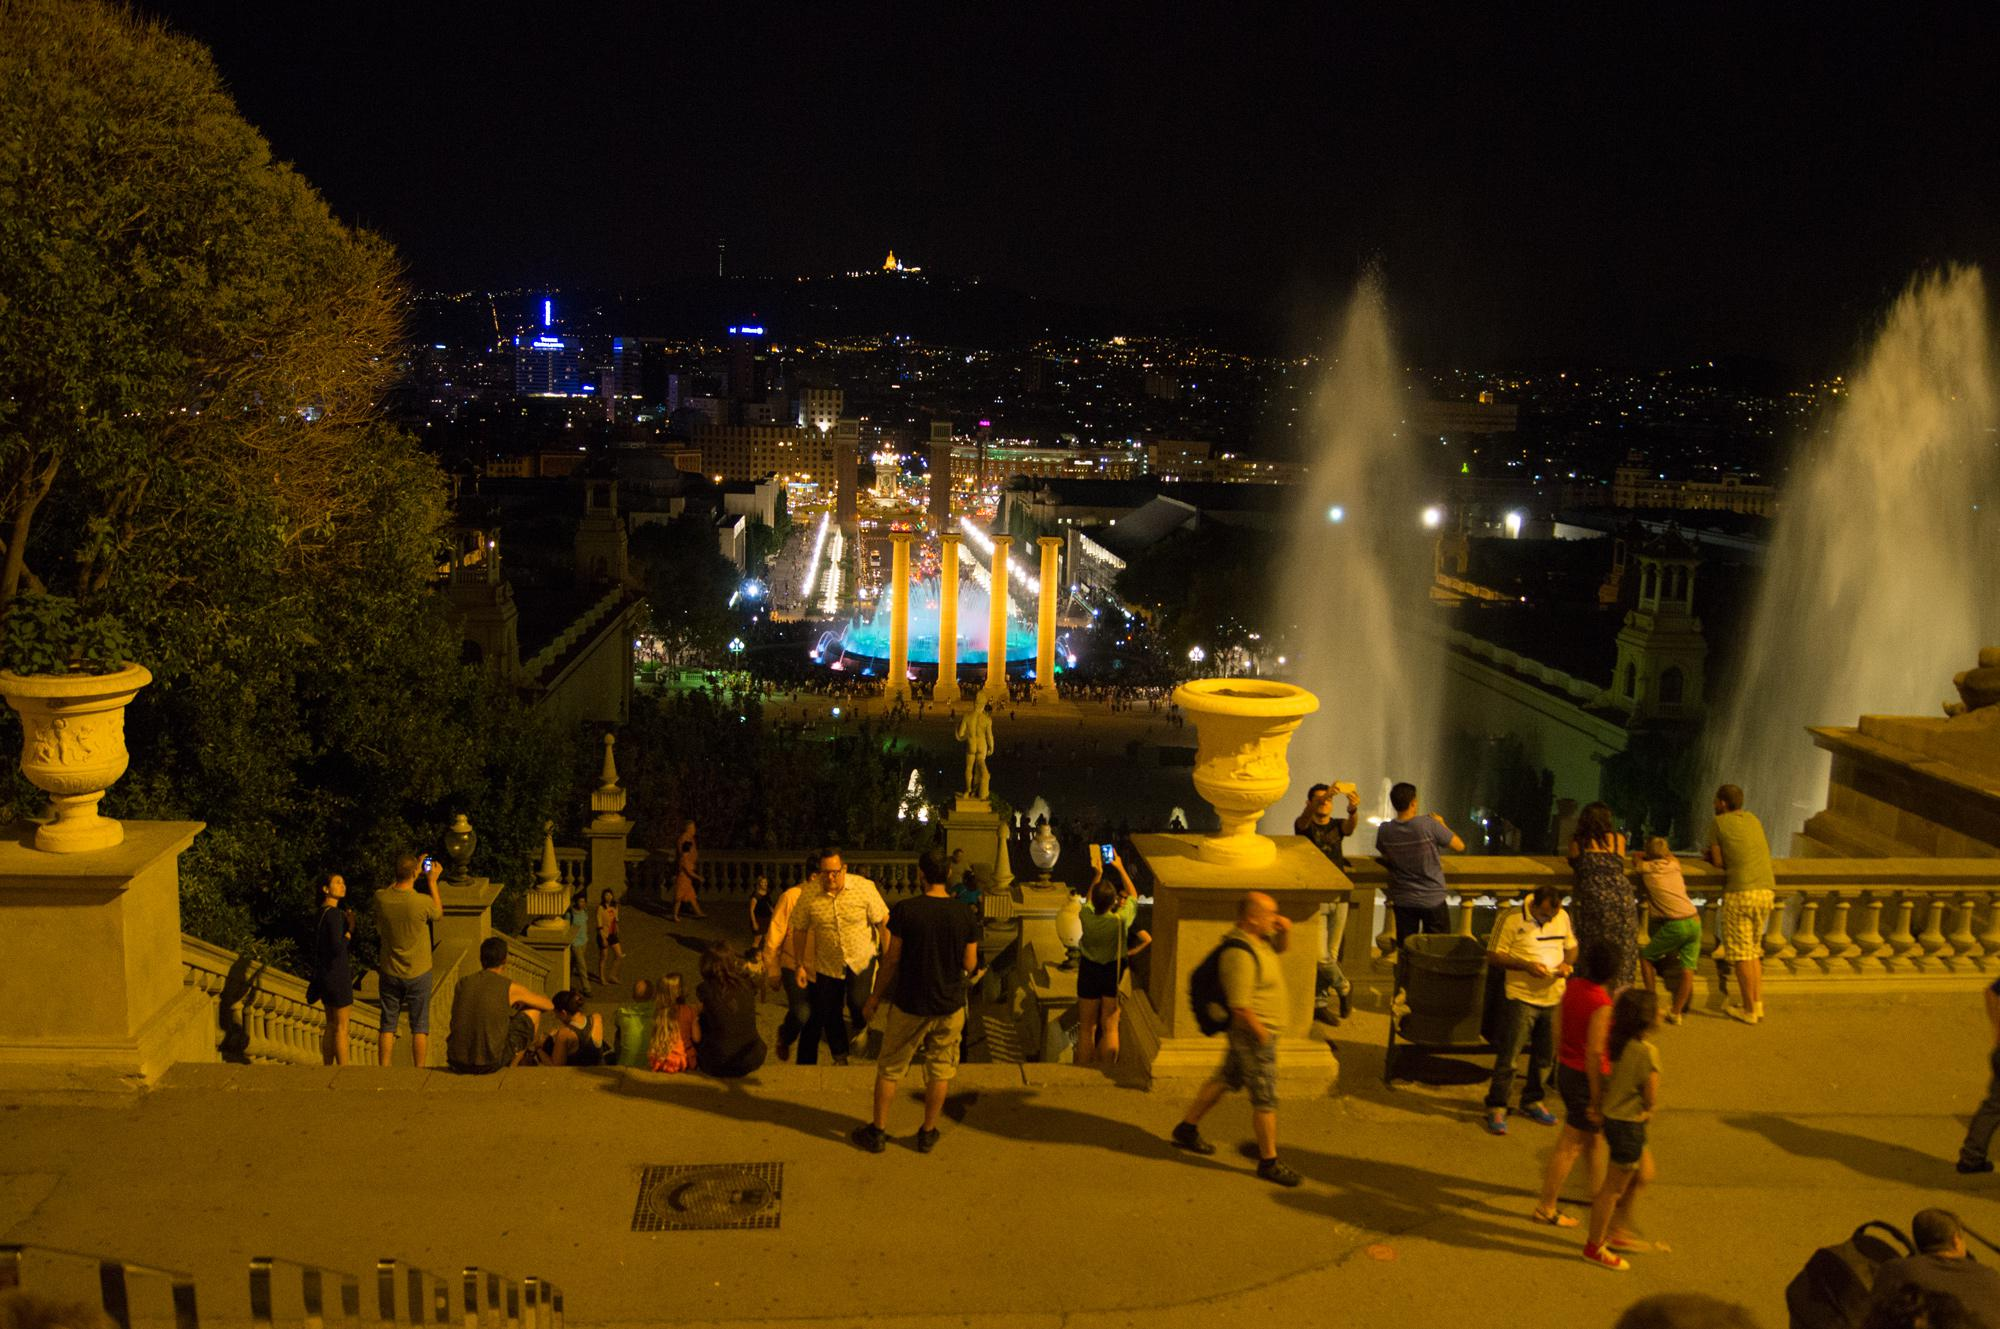 View of Magic fountain of Montjuic (Font màgica de Montjuïc) from the National Art Museum of Catalonia in Barcelona